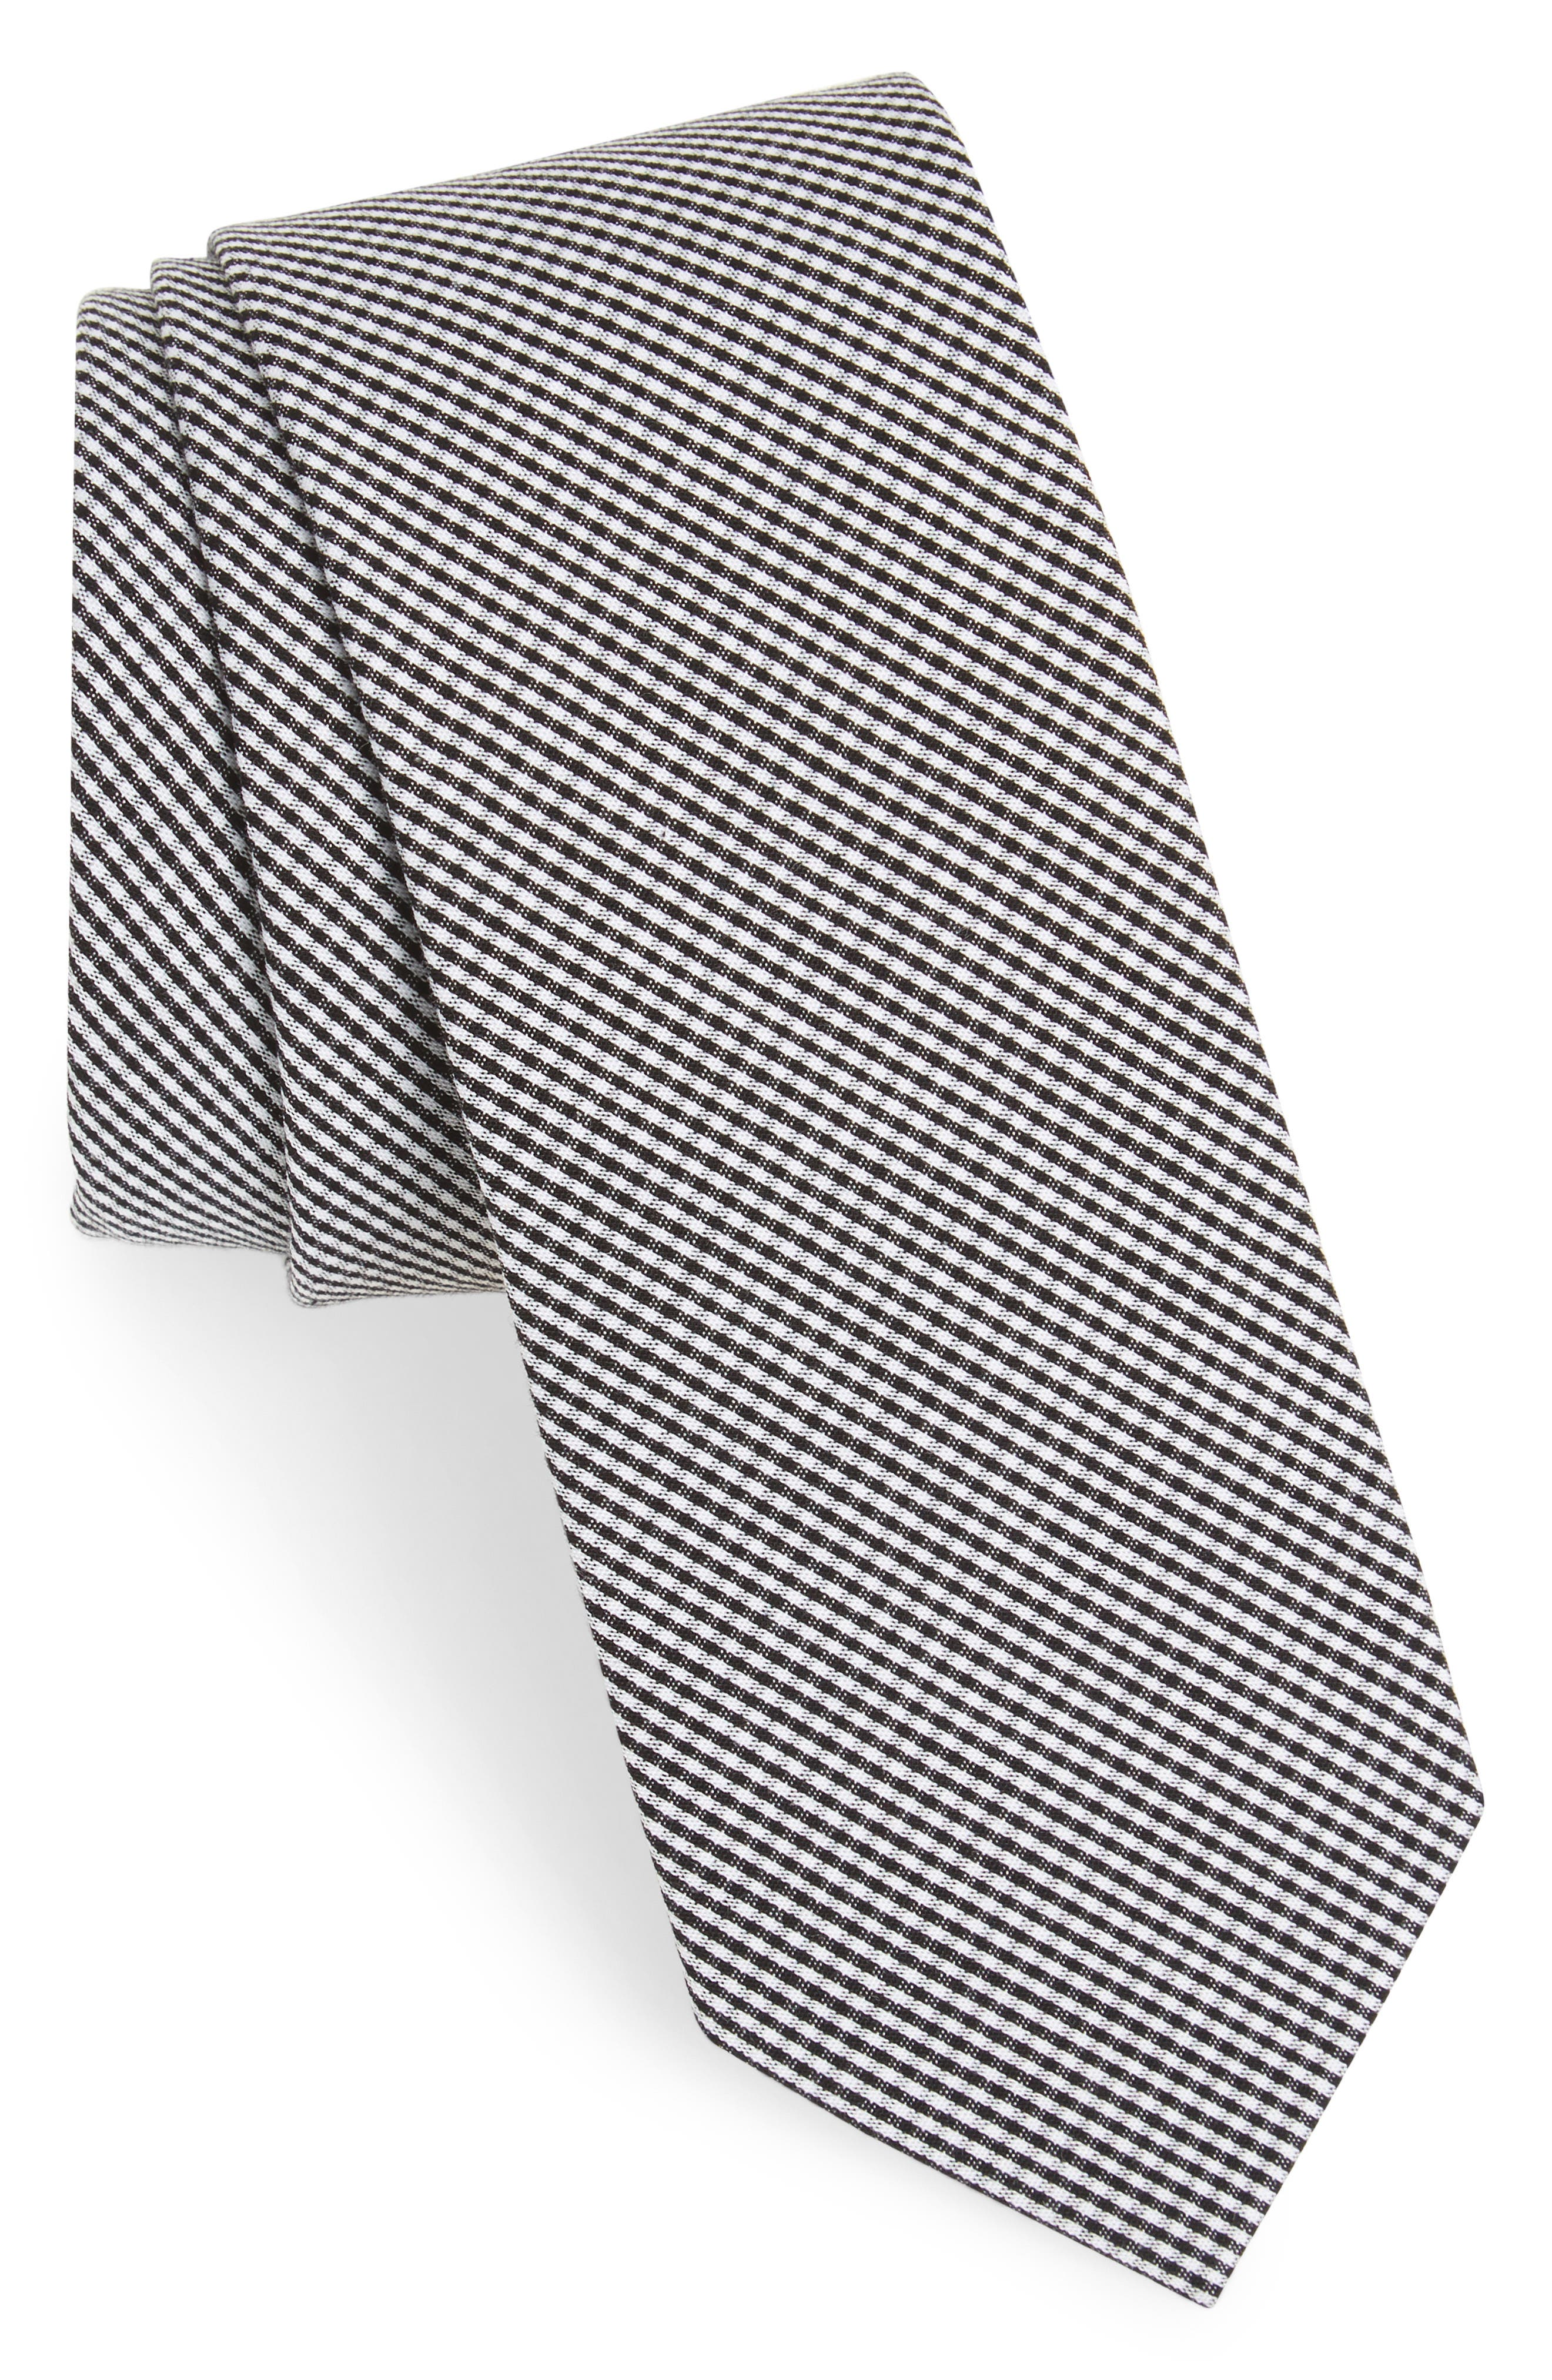 Check Cotton Tie,                         Main,                         color, 001